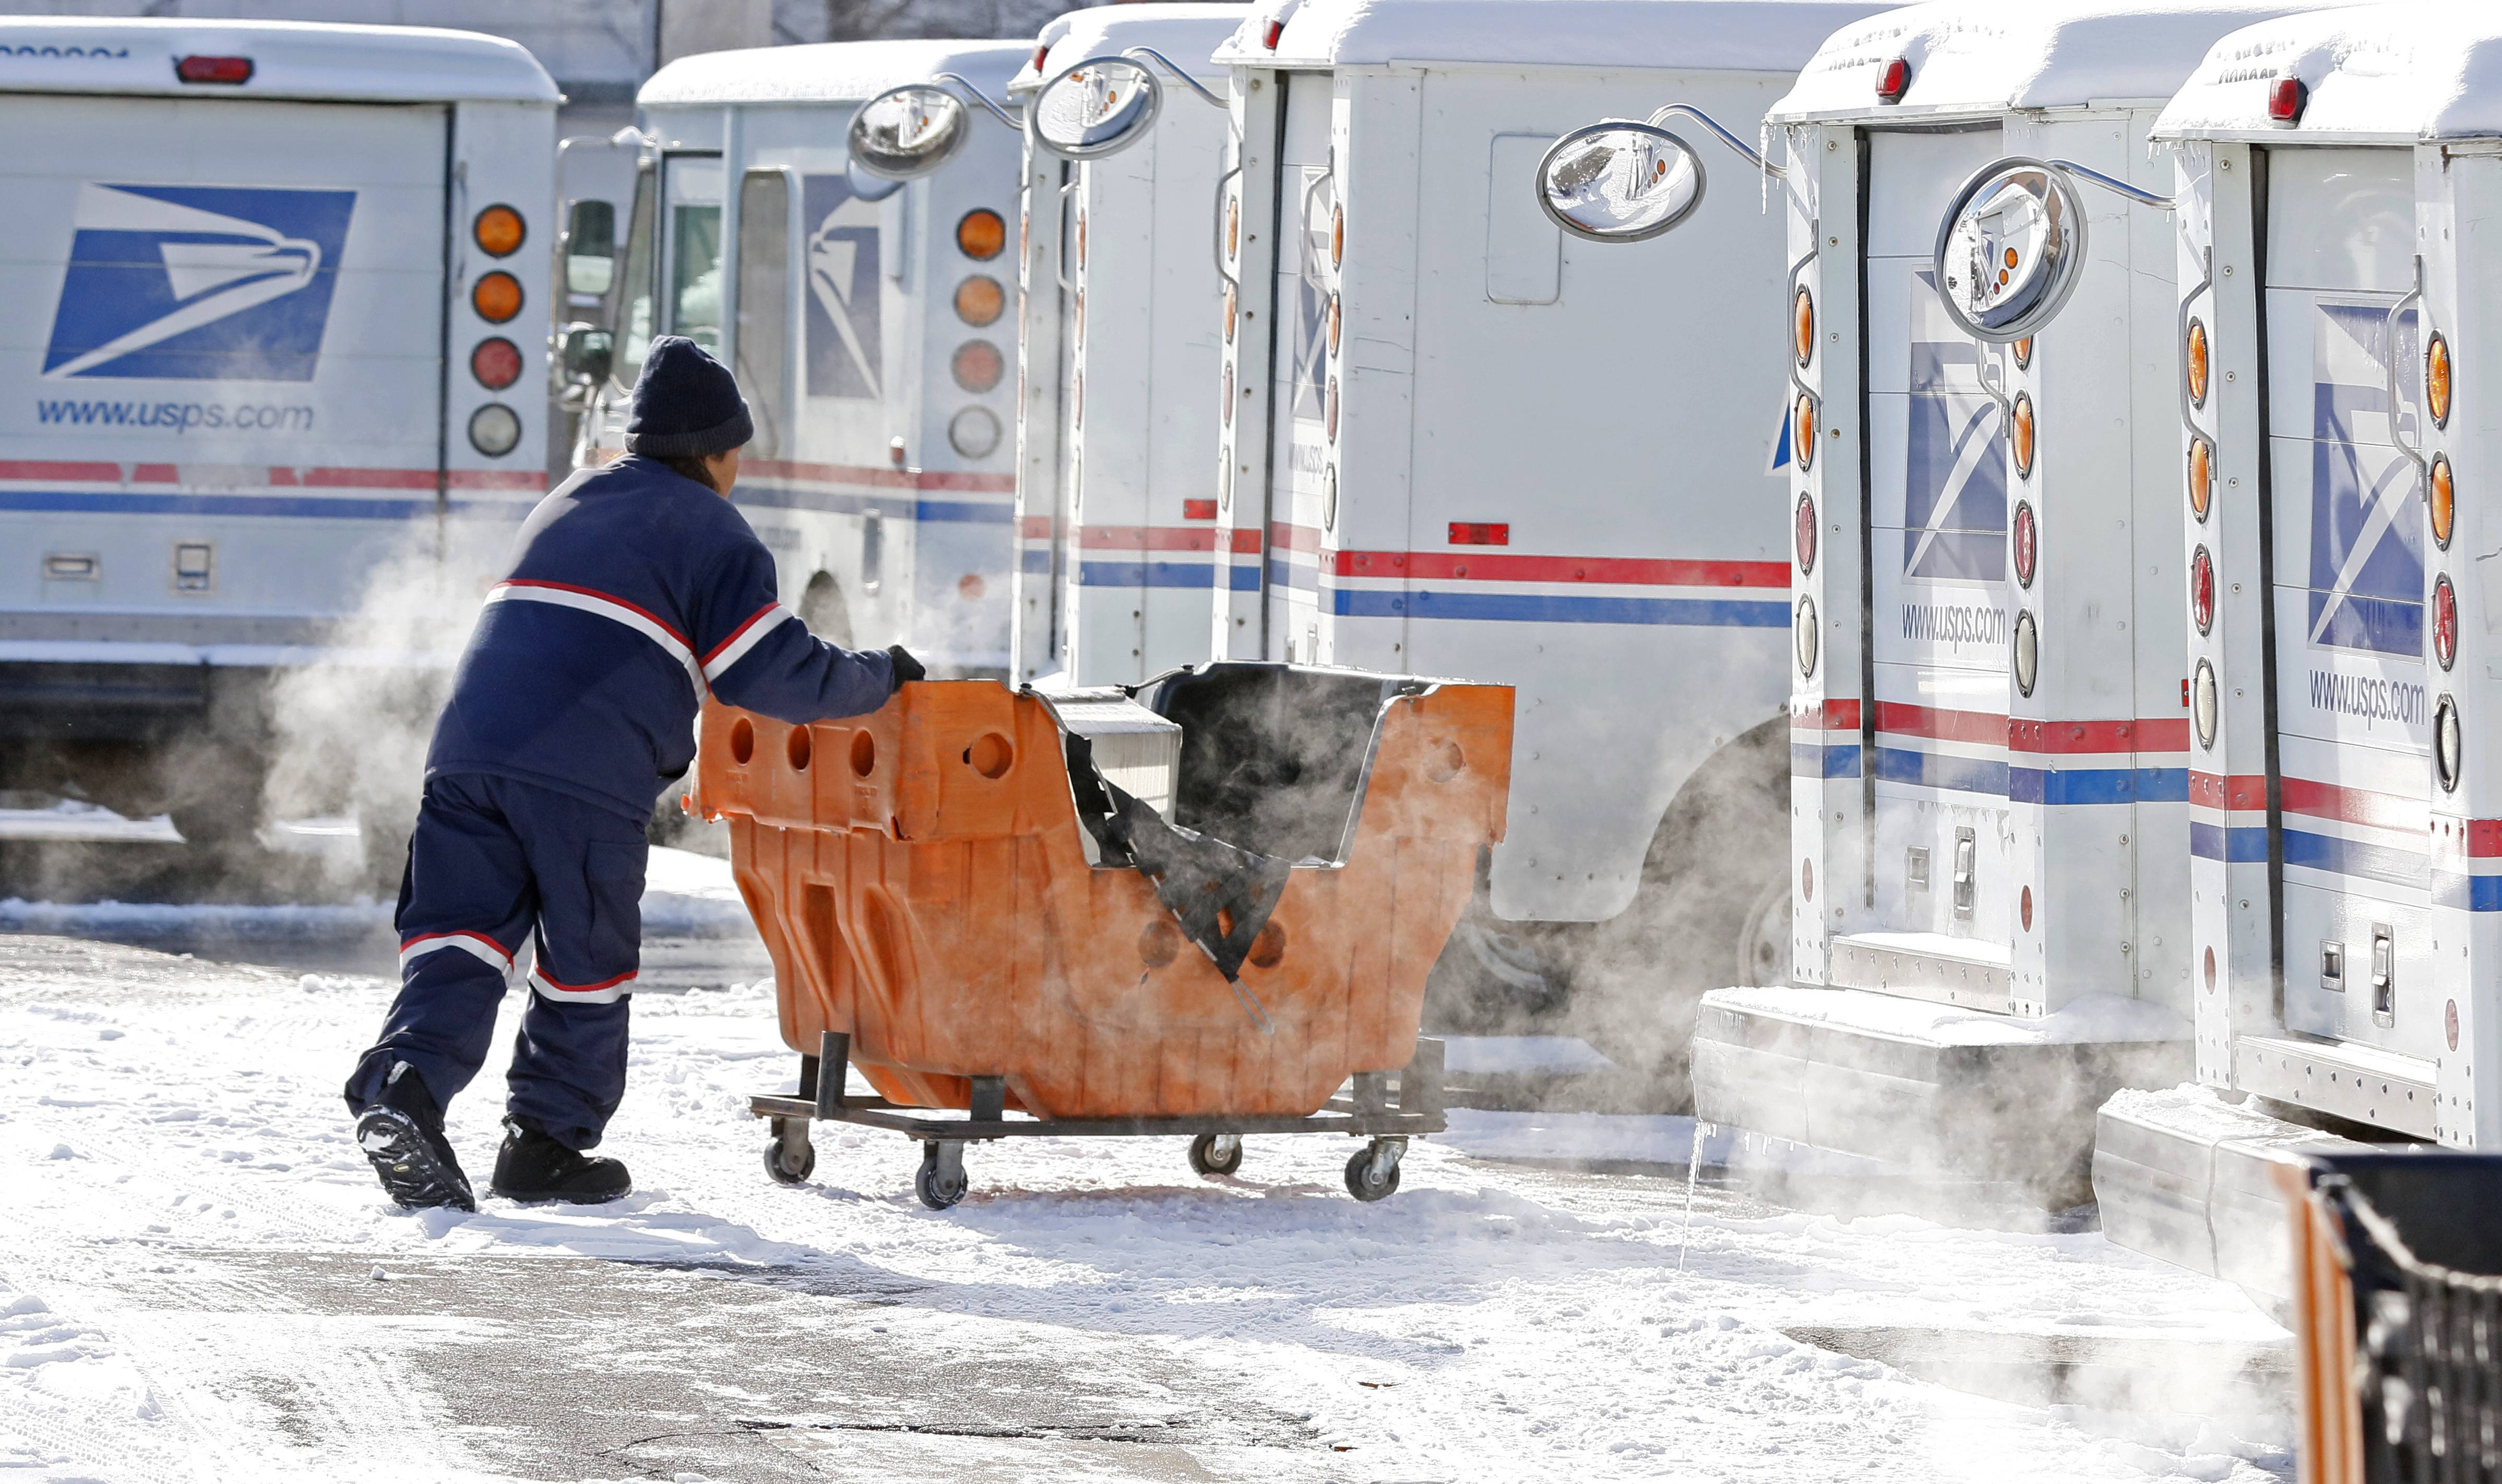 An Elmhurst Postal worker finishes loading his truck as frigid temperatures begin to blanket the area for the next week.